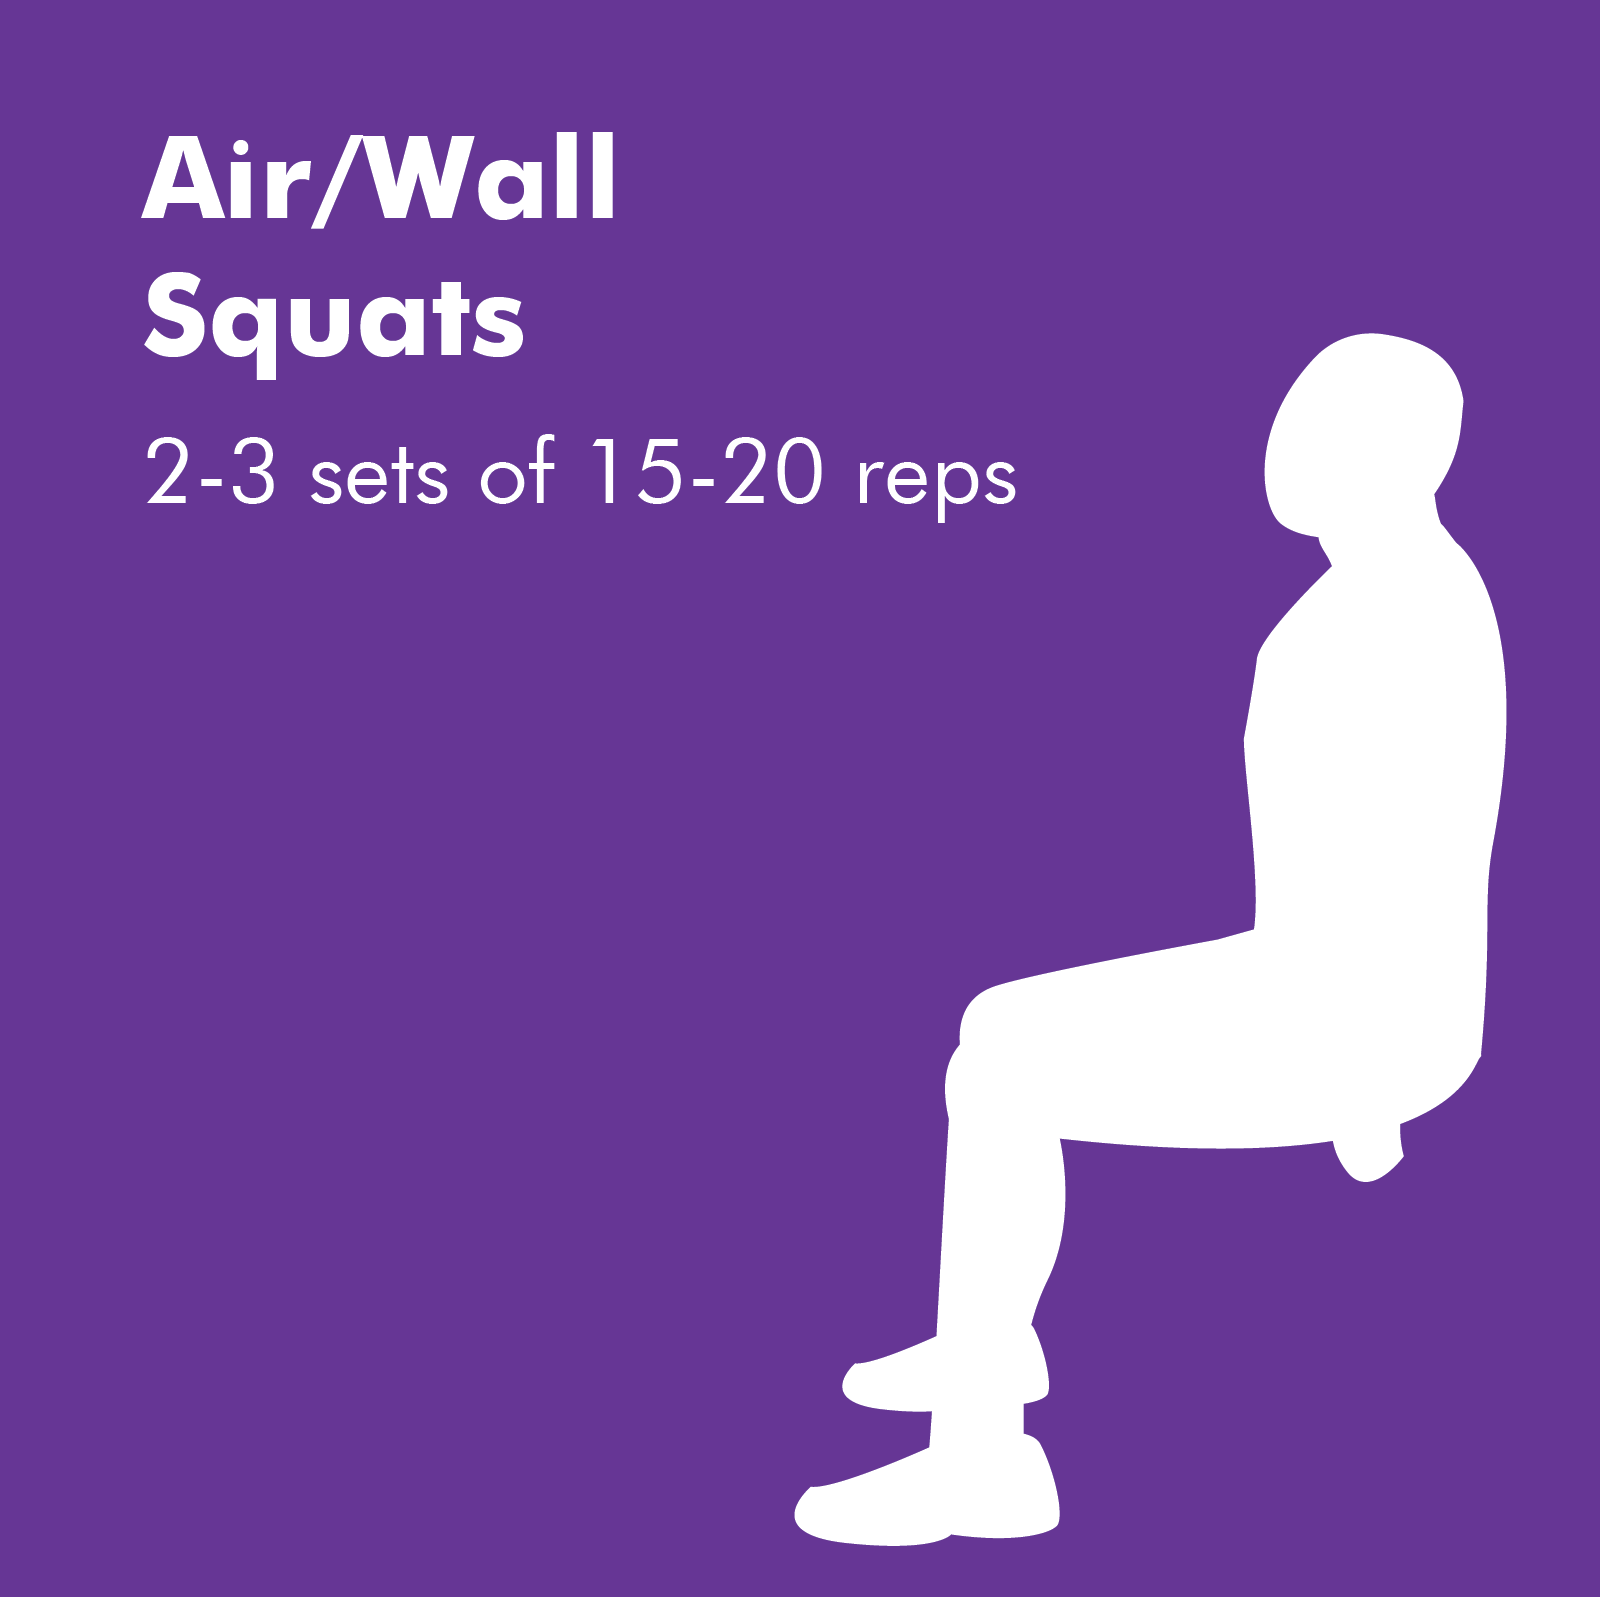 Air squats are good for working your lower body and activating your leg muscles if you can't go out to walk. You can do wall squats if air squats gets too exhausting.